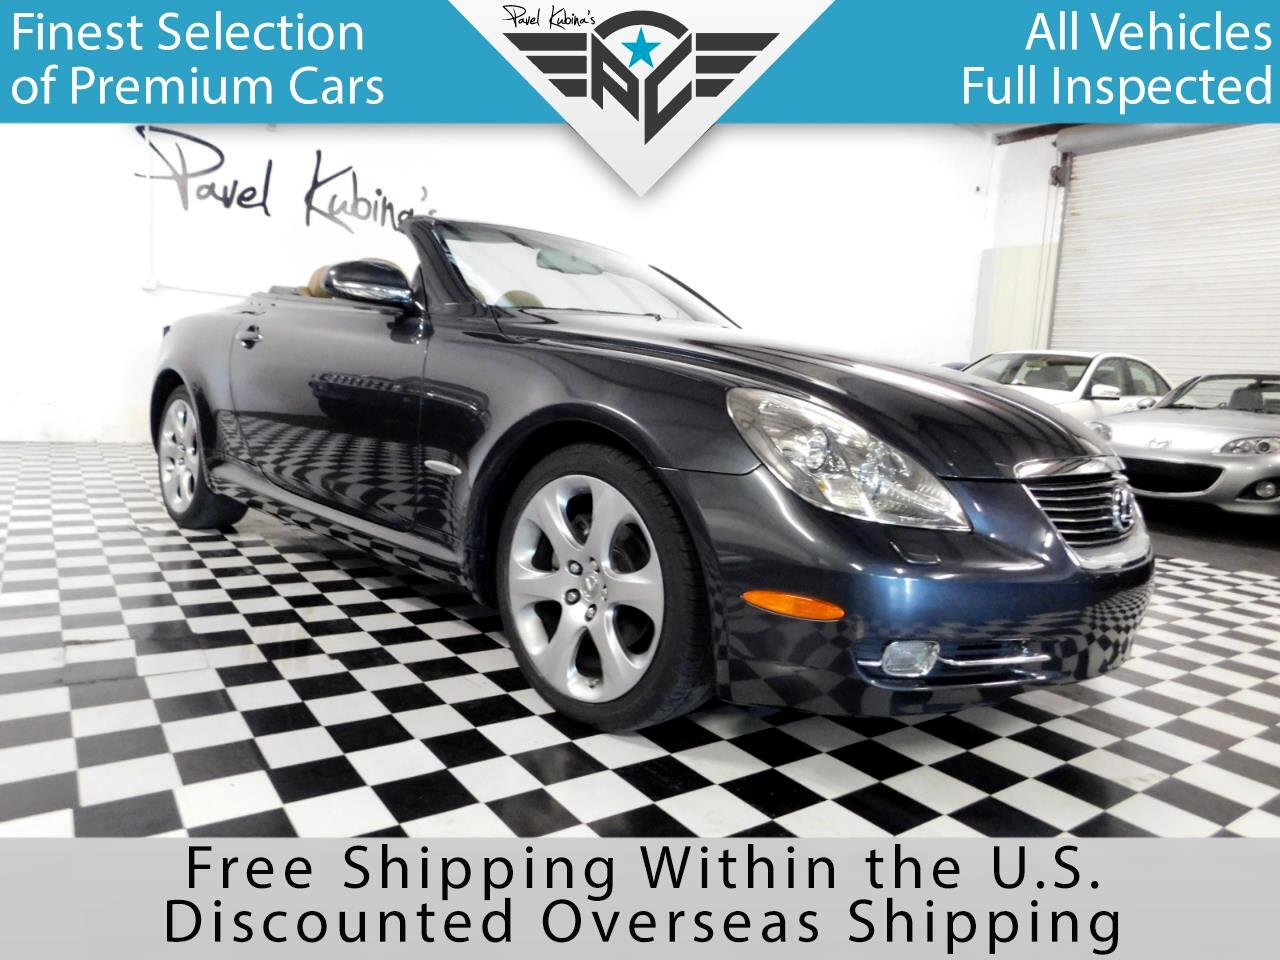 2008 Lexus SC 430 2dr Converible Pebble Beach Edition